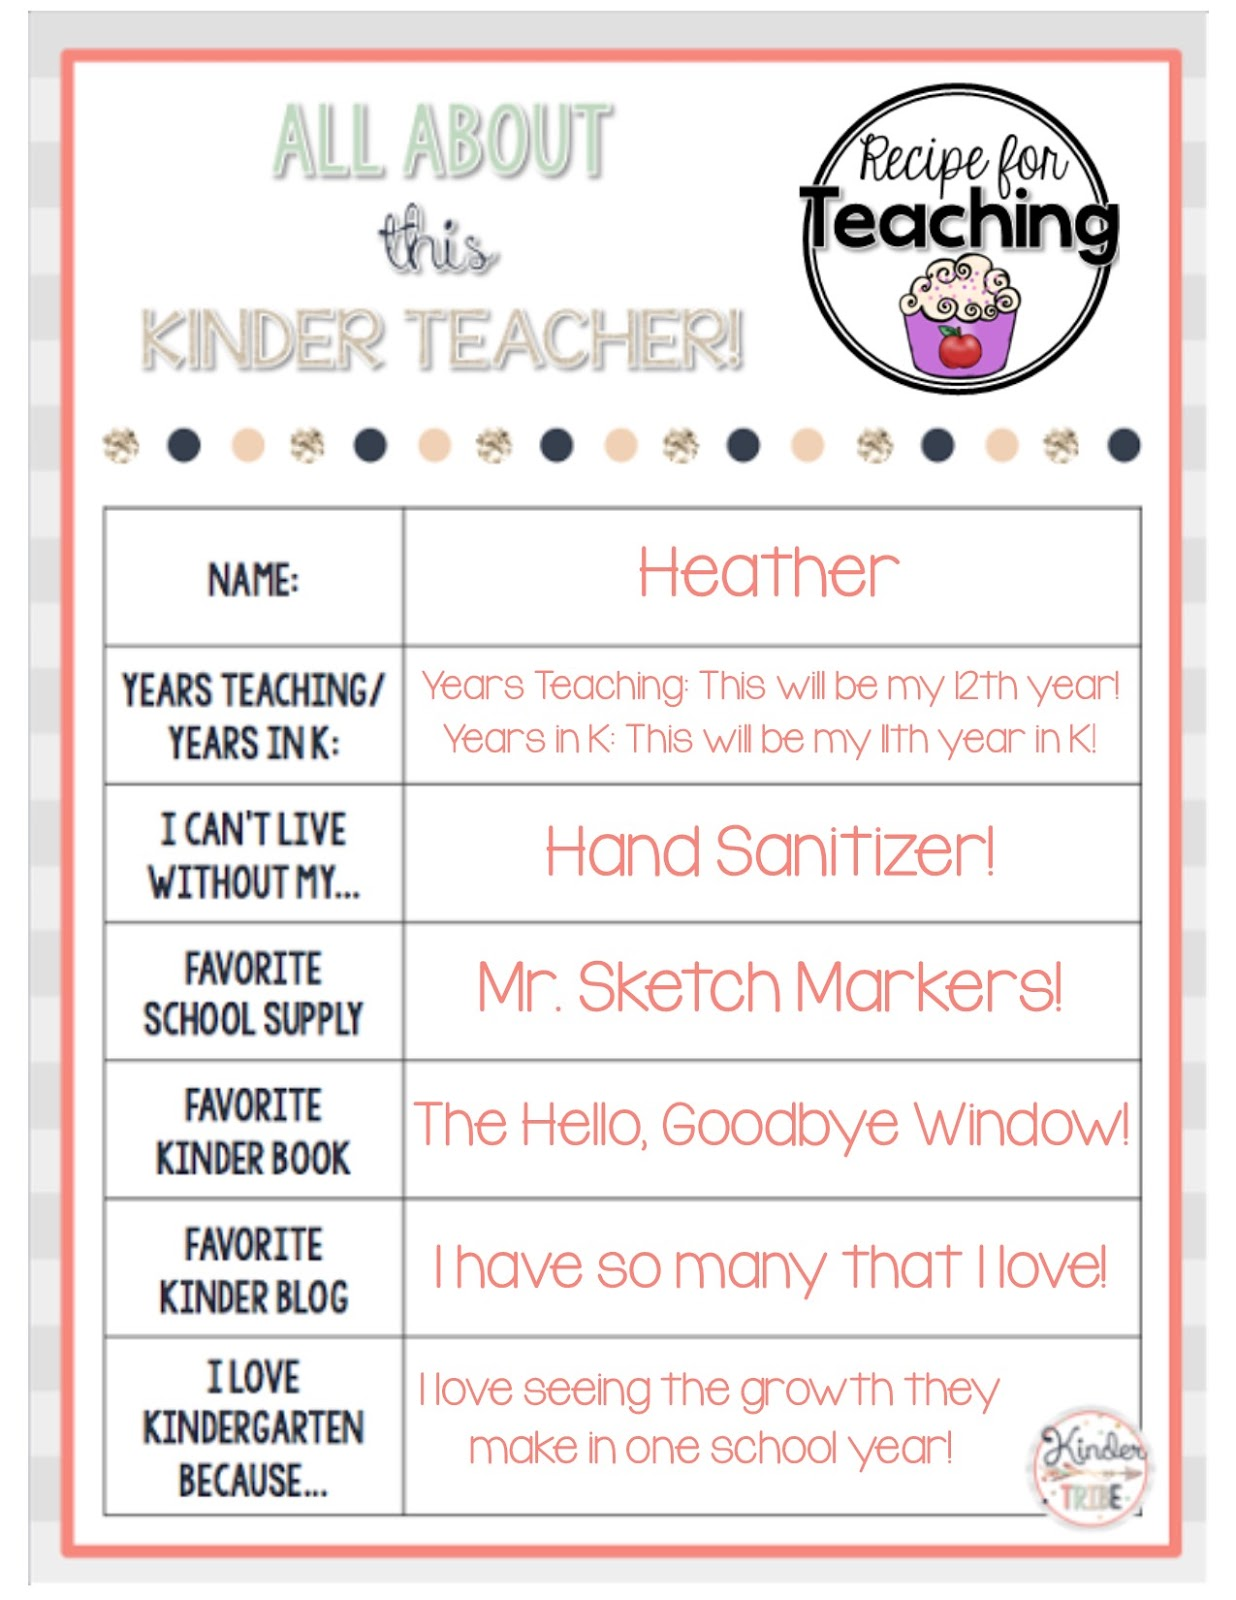 All About This Kinder Teacher